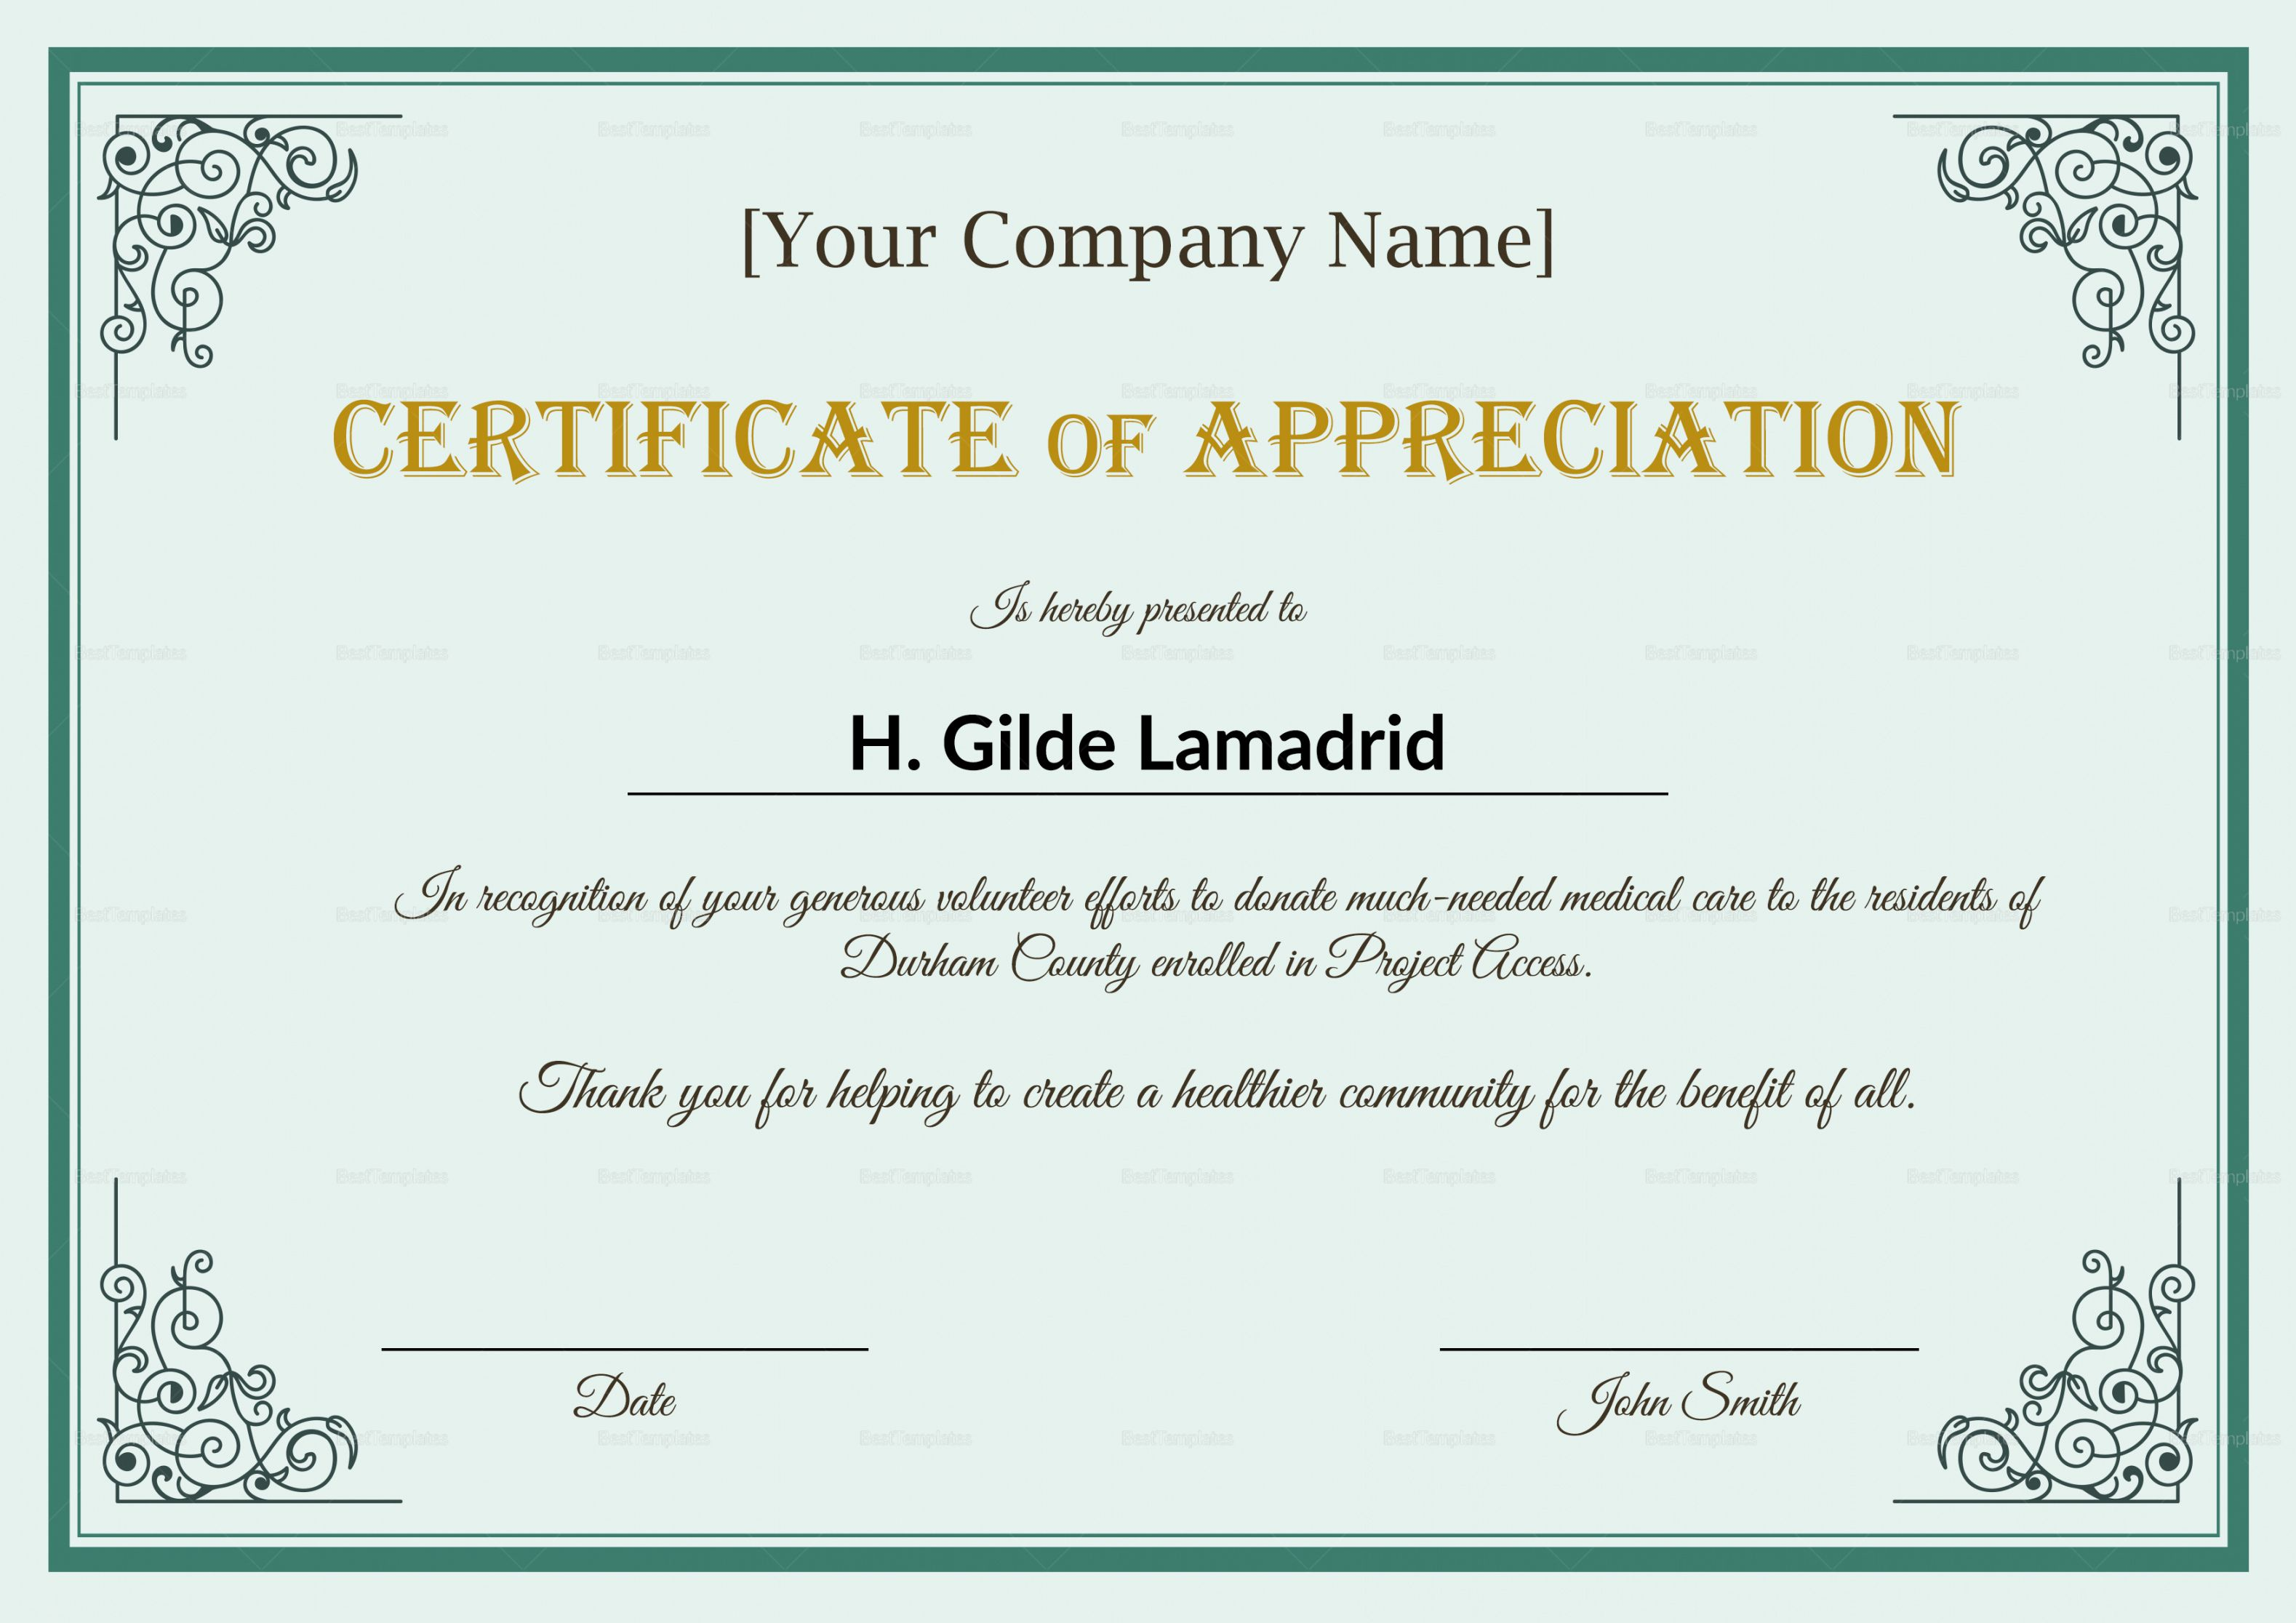 Get Our Free Employee Appreciation Certificate Template Certificate Of Recognition Template Certificate Of Appreciation Certificate Design Template